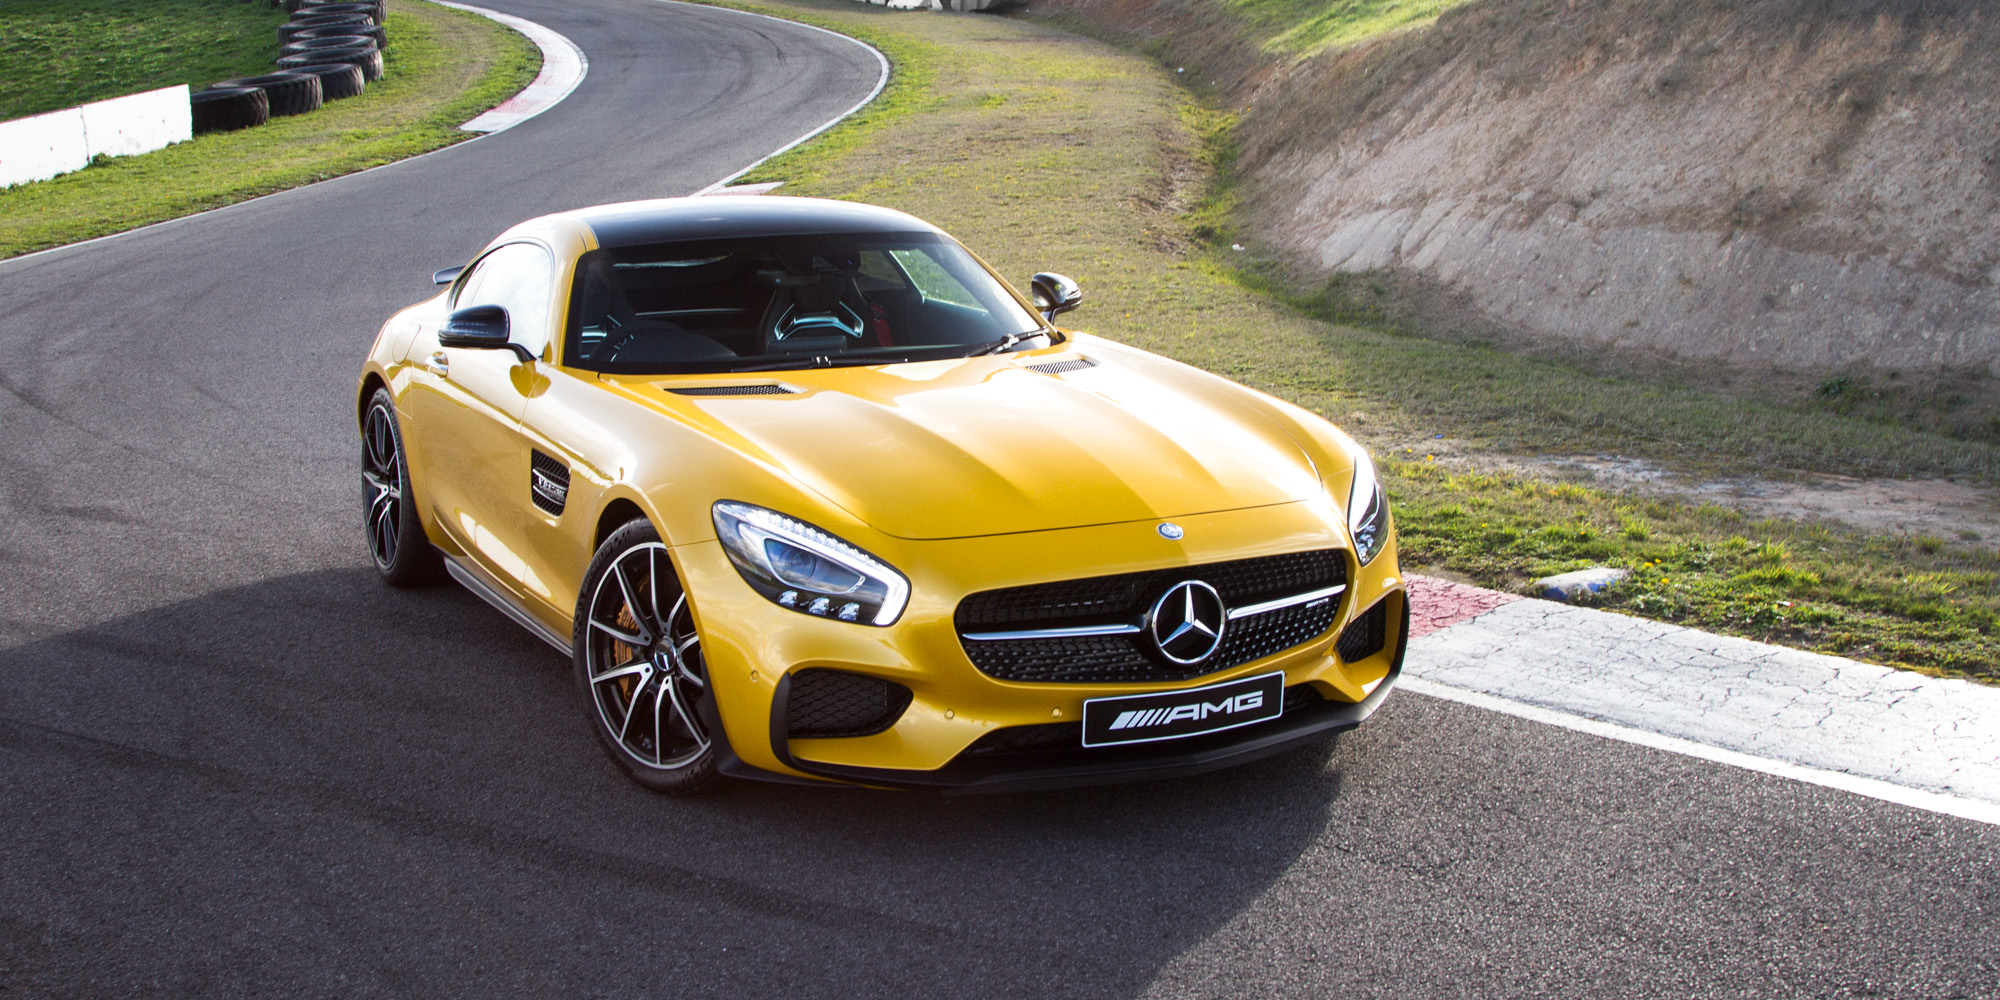 Mercedes Benz to recall 11,166 imported vehicles in China